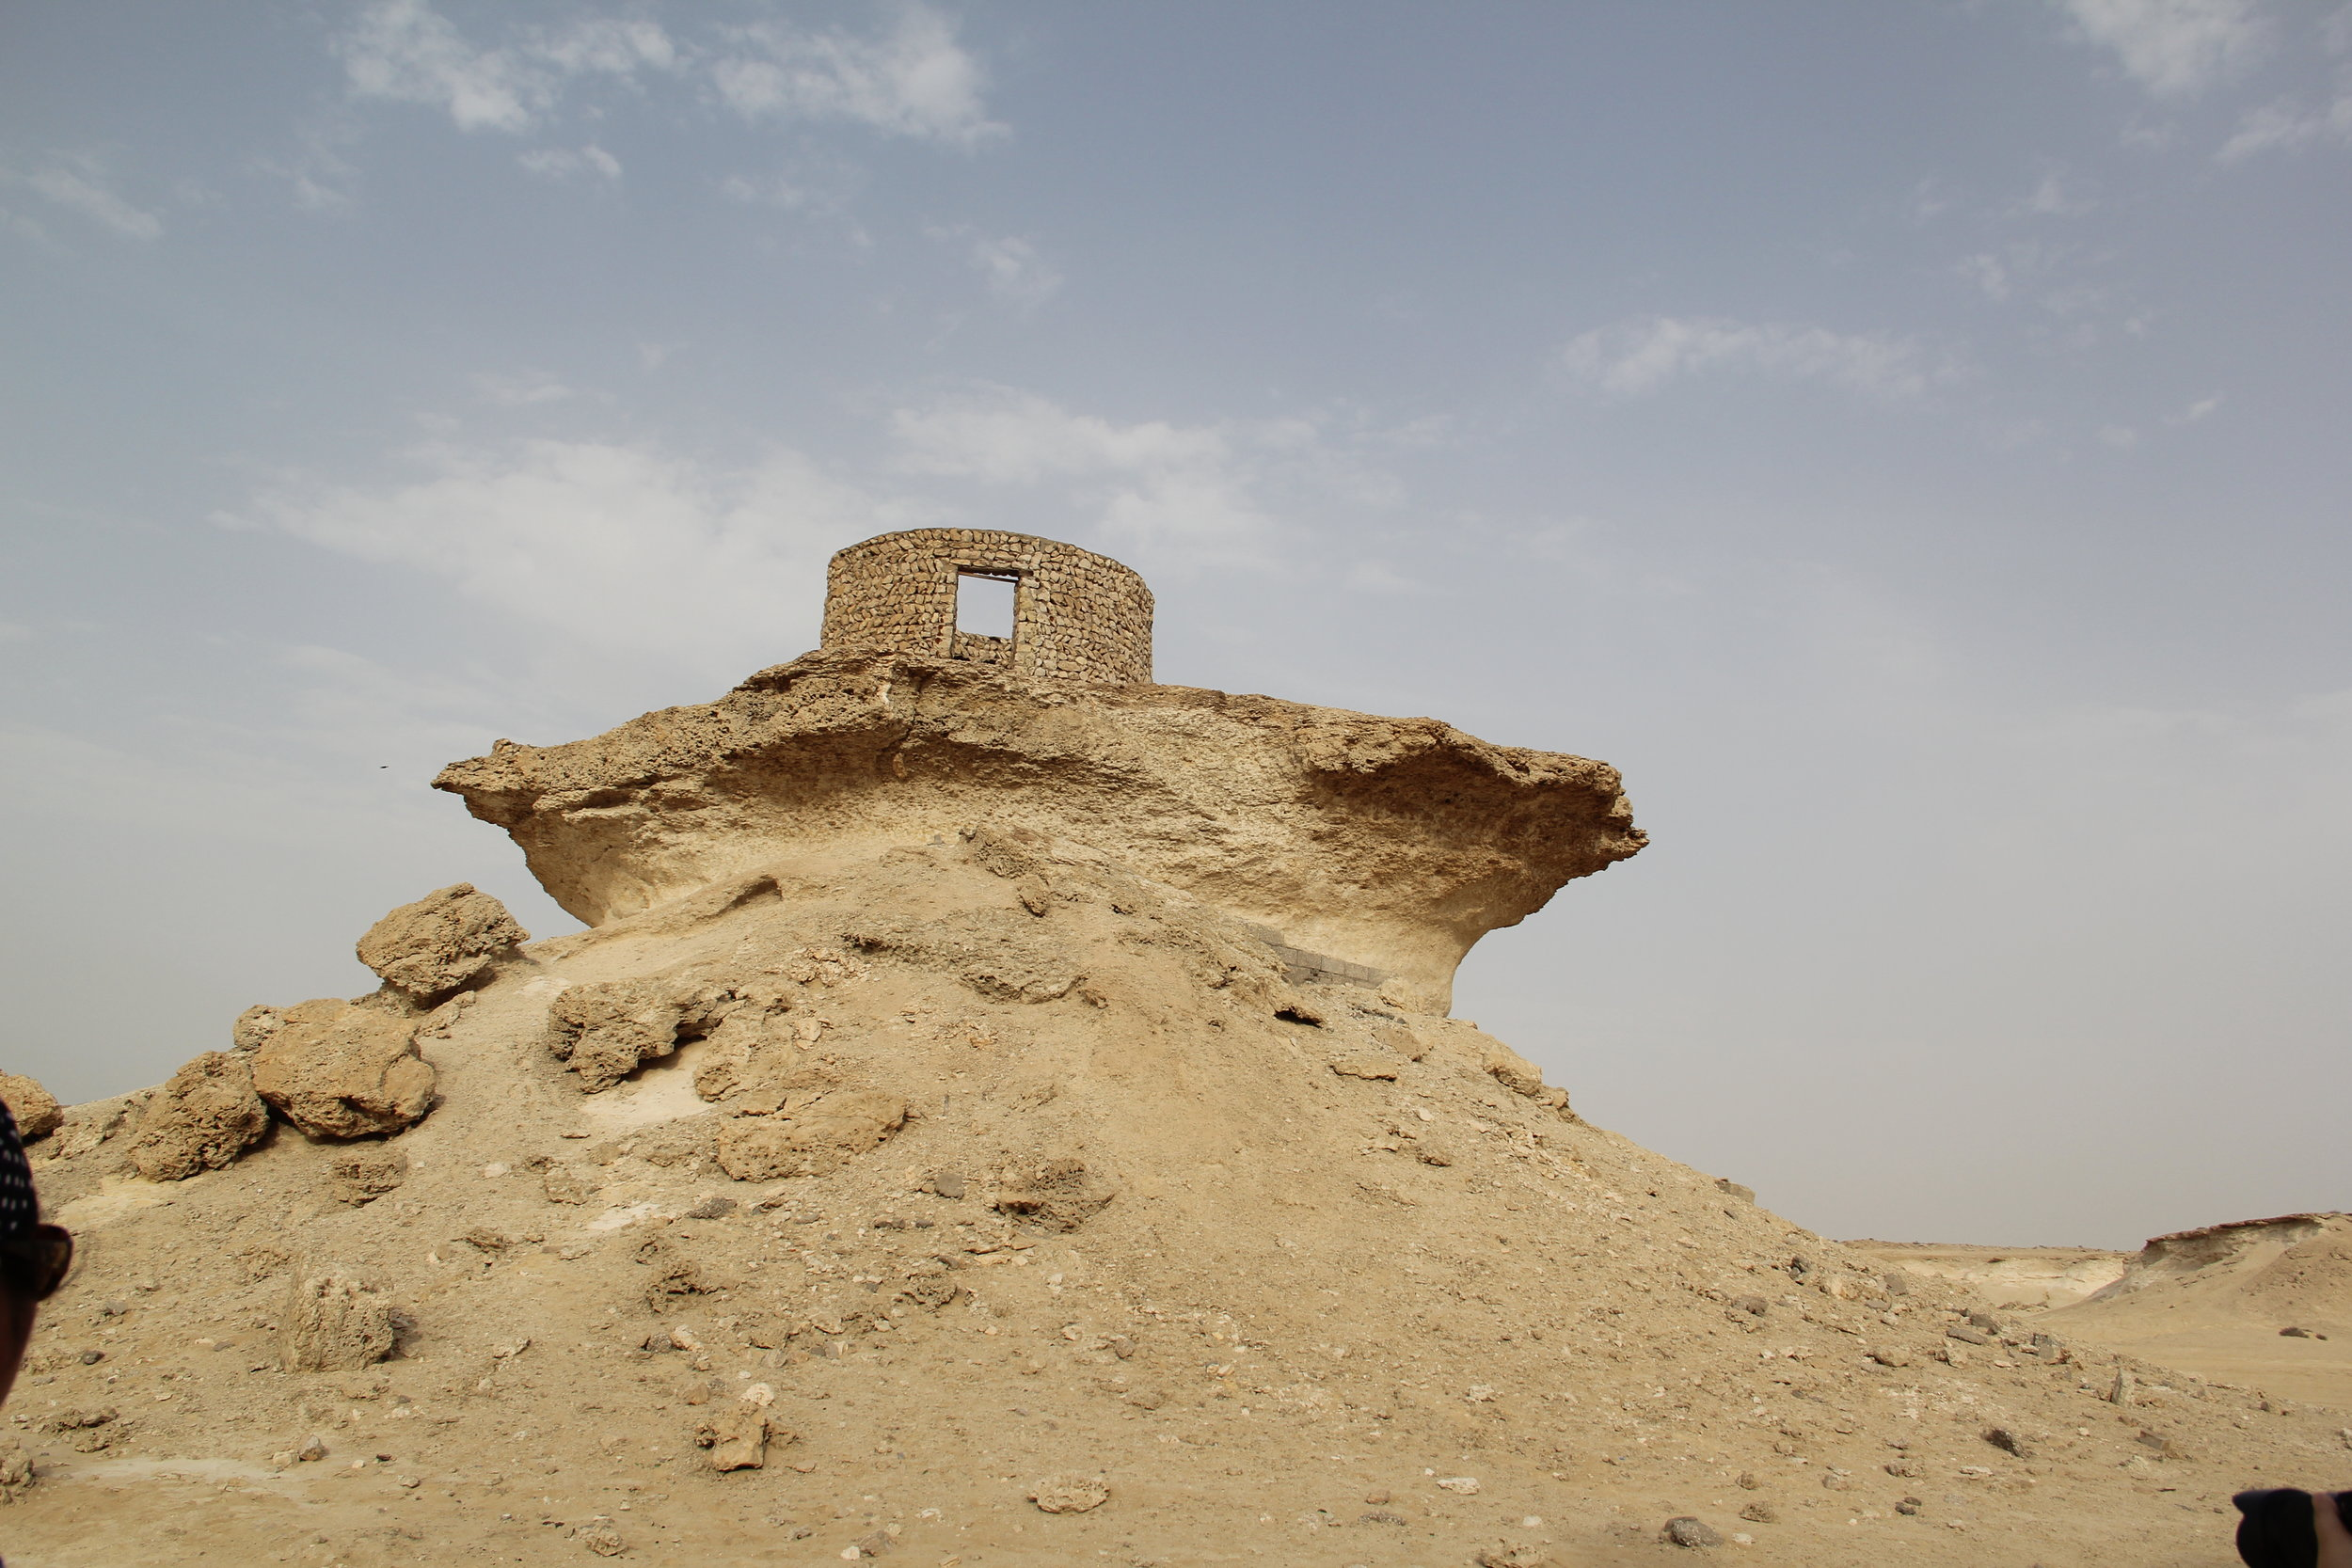 No One will Understand Our Story. The Mysterious Village, Zekreet, Qatar. Taken by Tyanna LC